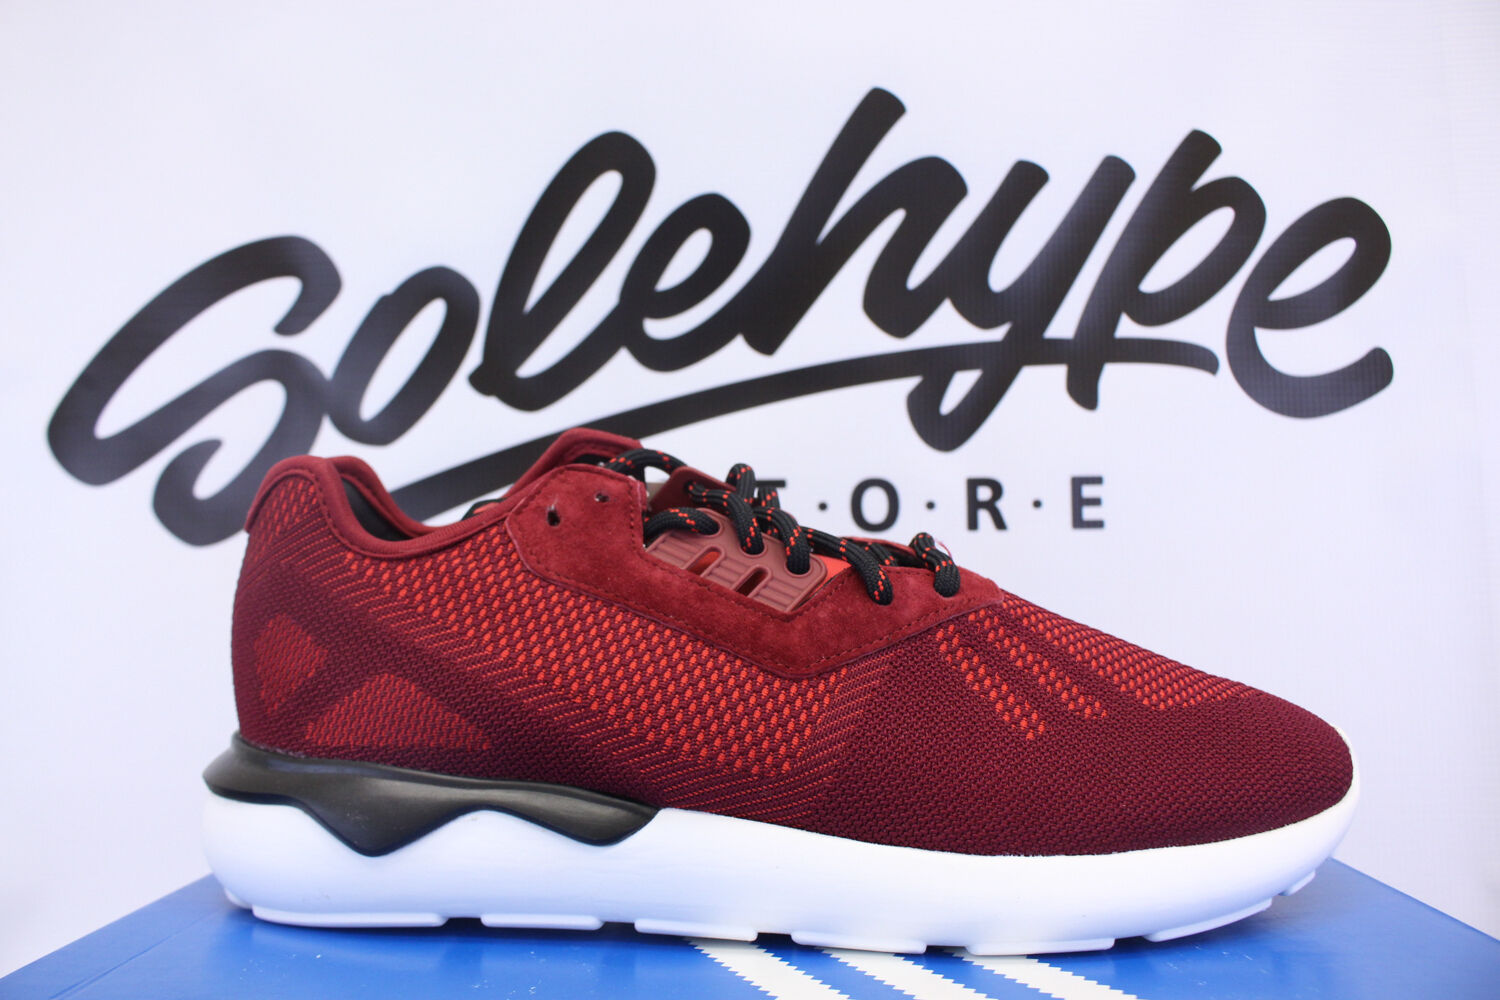 ADIDAS TUBULAR RUNNER WEAVE COLLEGIATE BURGUNDY RED BLACK WHITE S74812 SZ 8.5